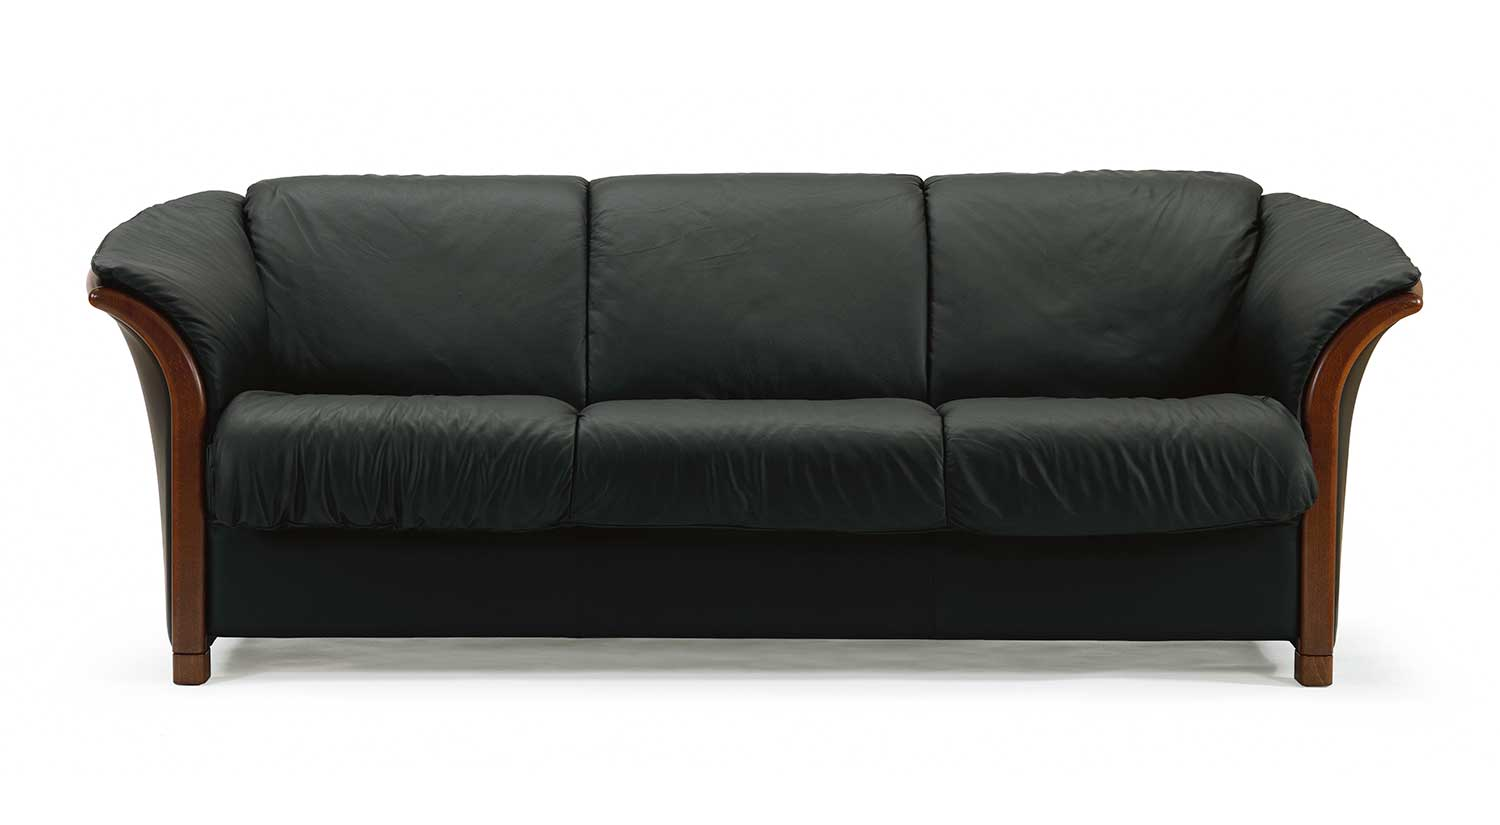 ekornes sofa ekornes stressless sofa armchair stool 3 piece suite leather teak thesofa. Black Bedroom Furniture Sets. Home Design Ideas